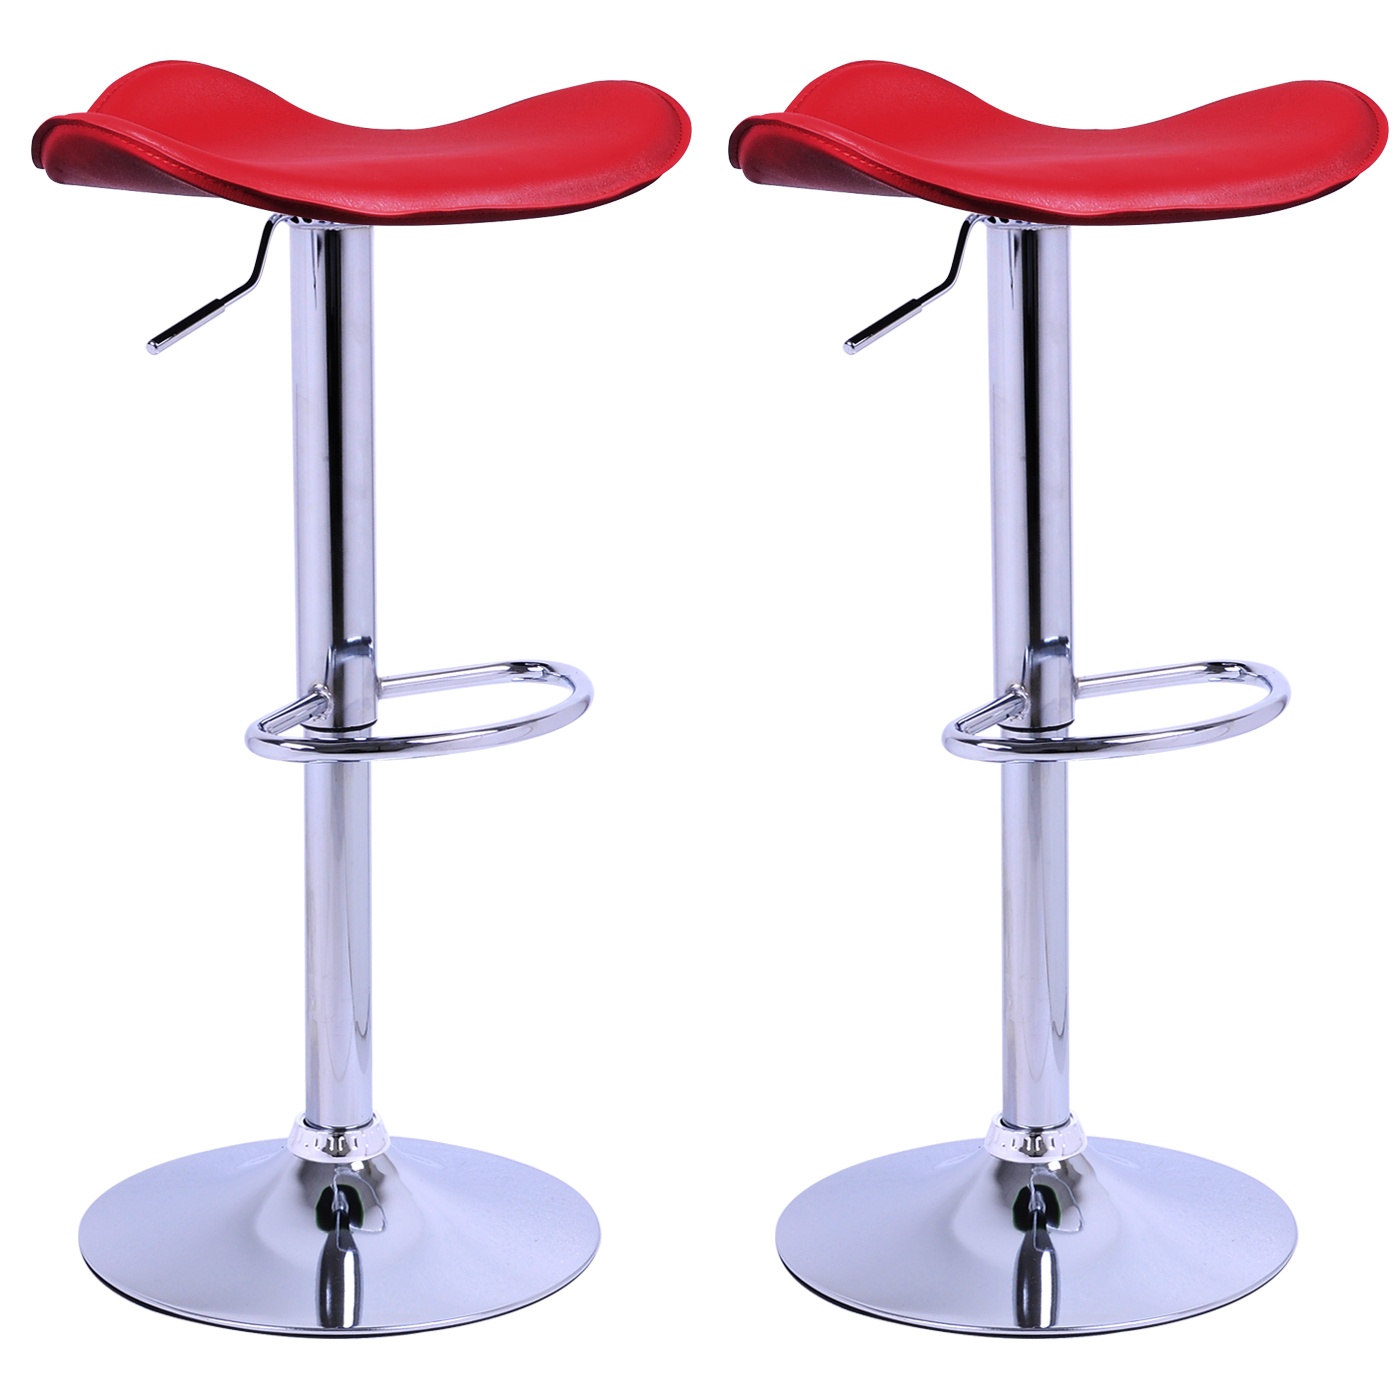 bar stools set of 2 1 faux leather adjust breakfast chair stool dark red u019 ebay. Black Bedroom Furniture Sets. Home Design Ideas